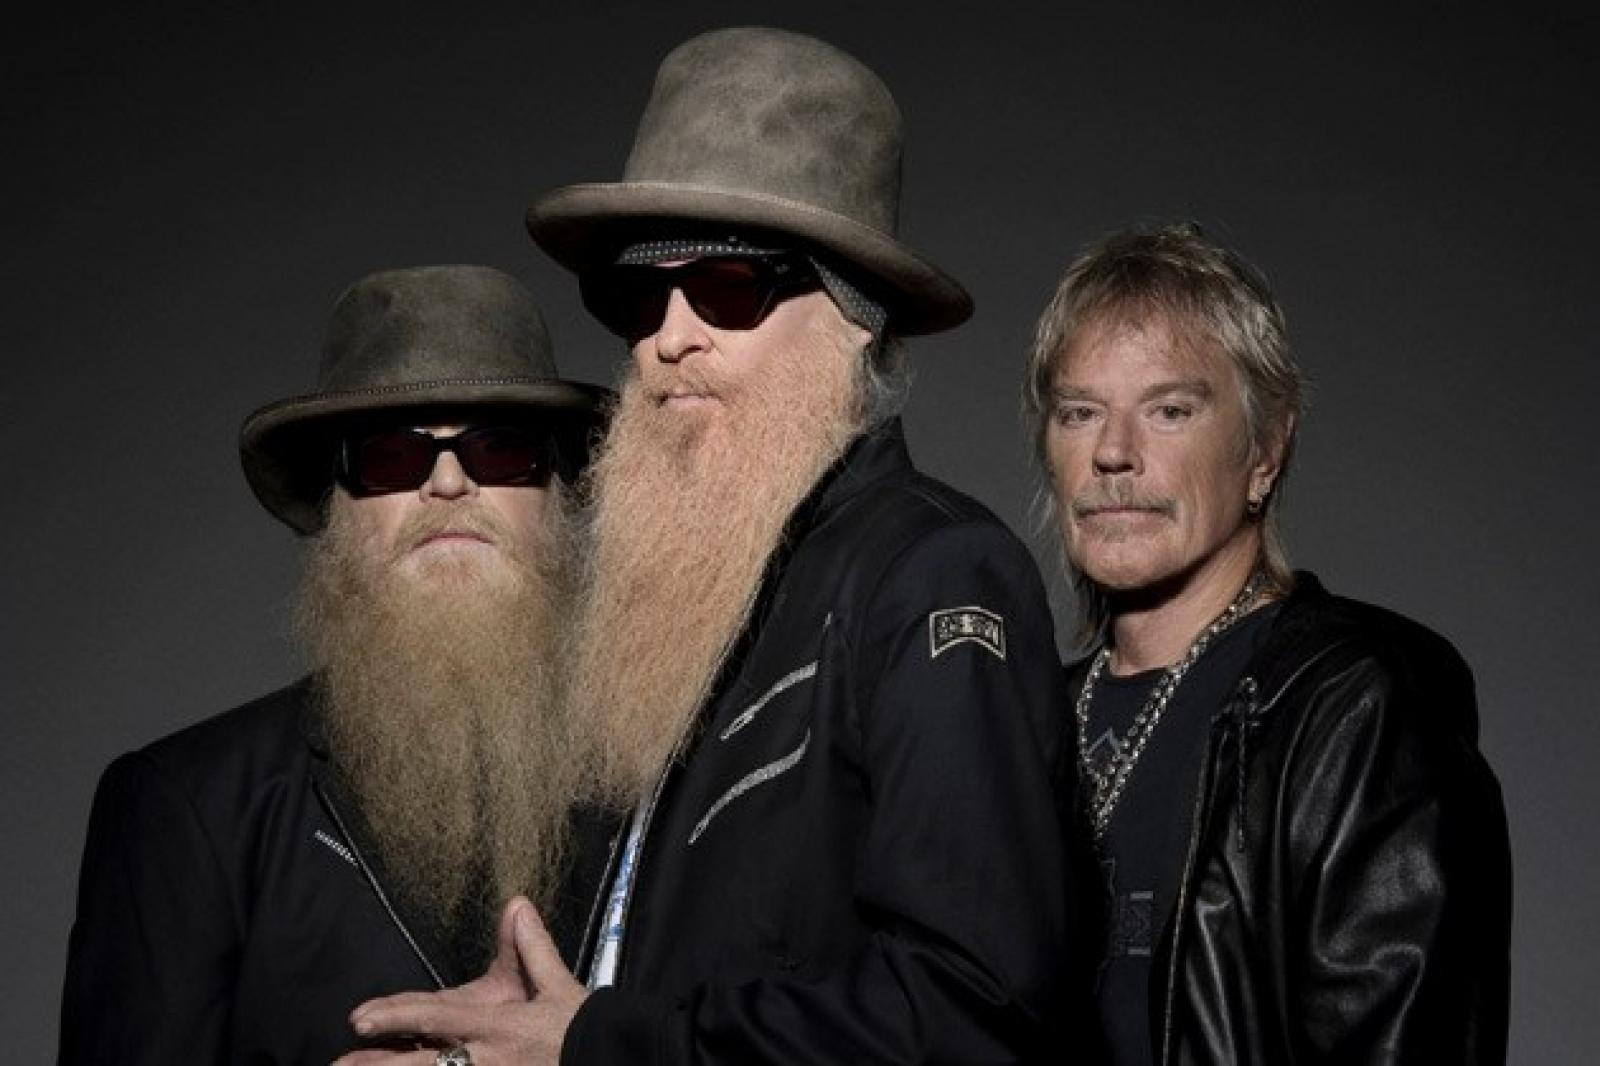 ZZ Top performed a mix of hits and oldies at Artpark.